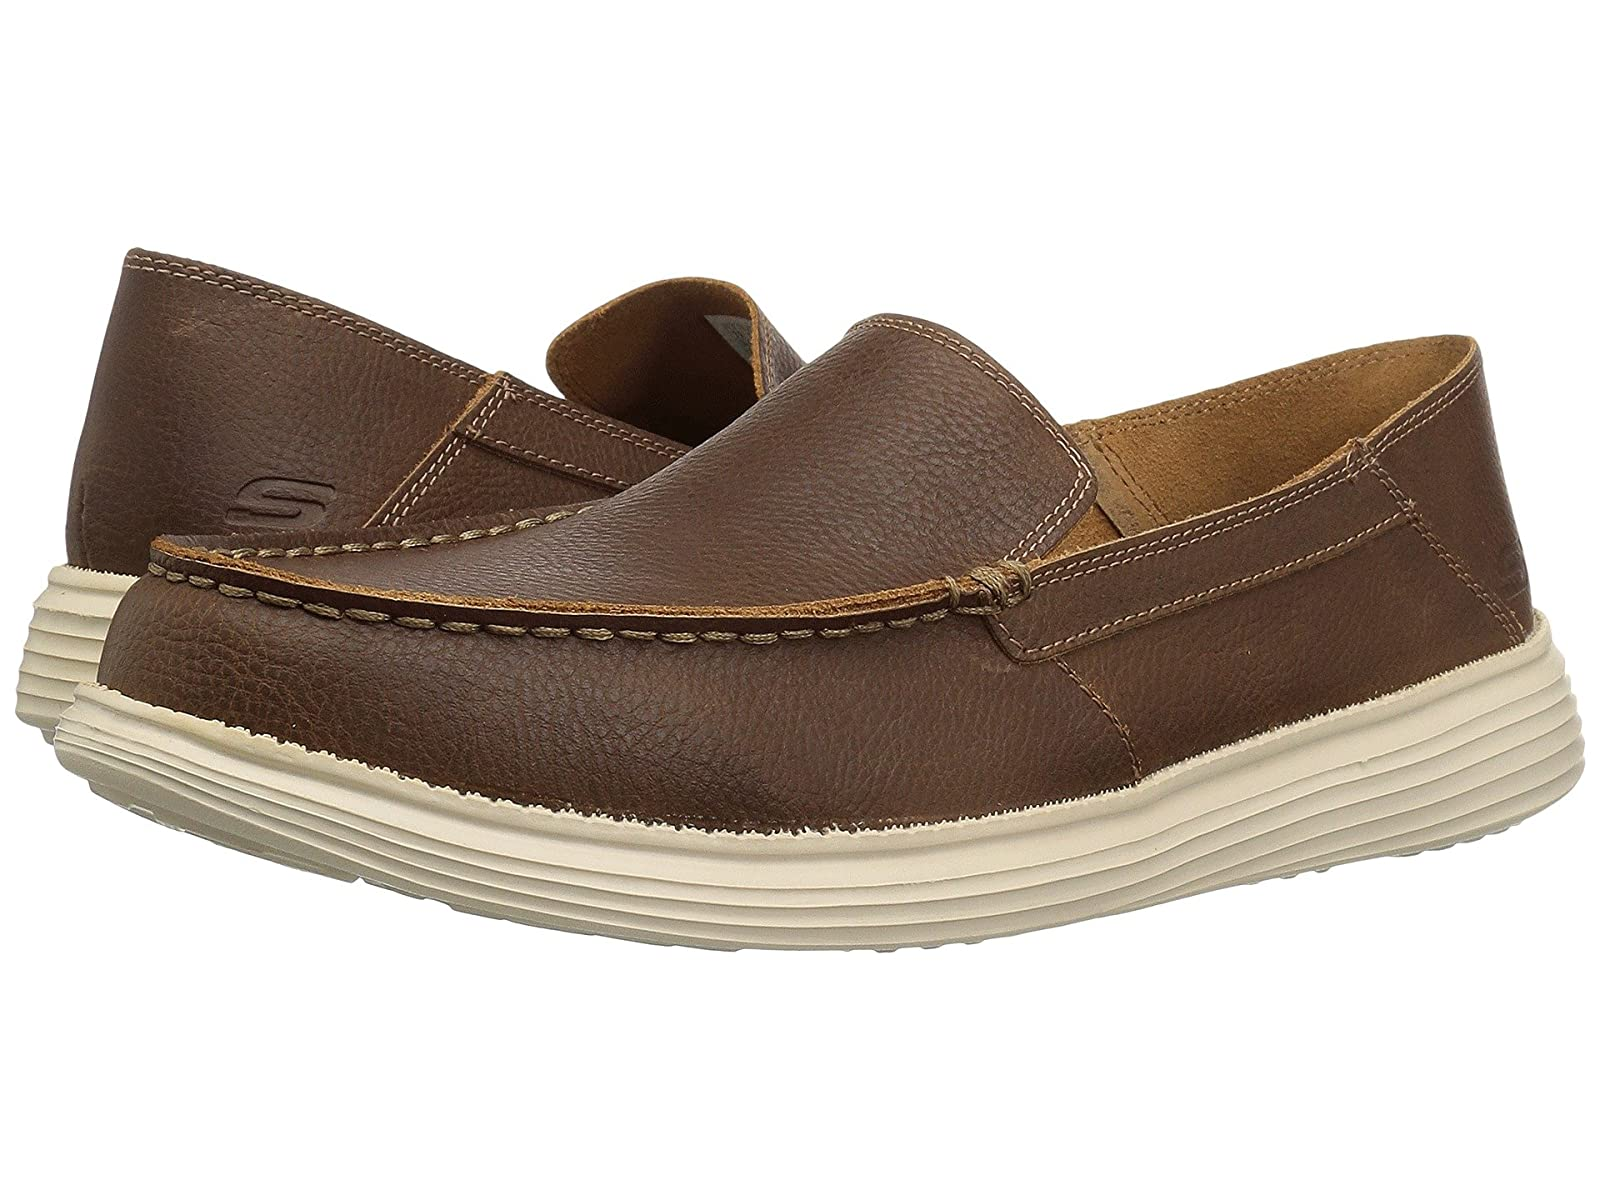 SKECHERS Relaxed Fit®: Status - BresonCheap and distinctive eye-catching shoes